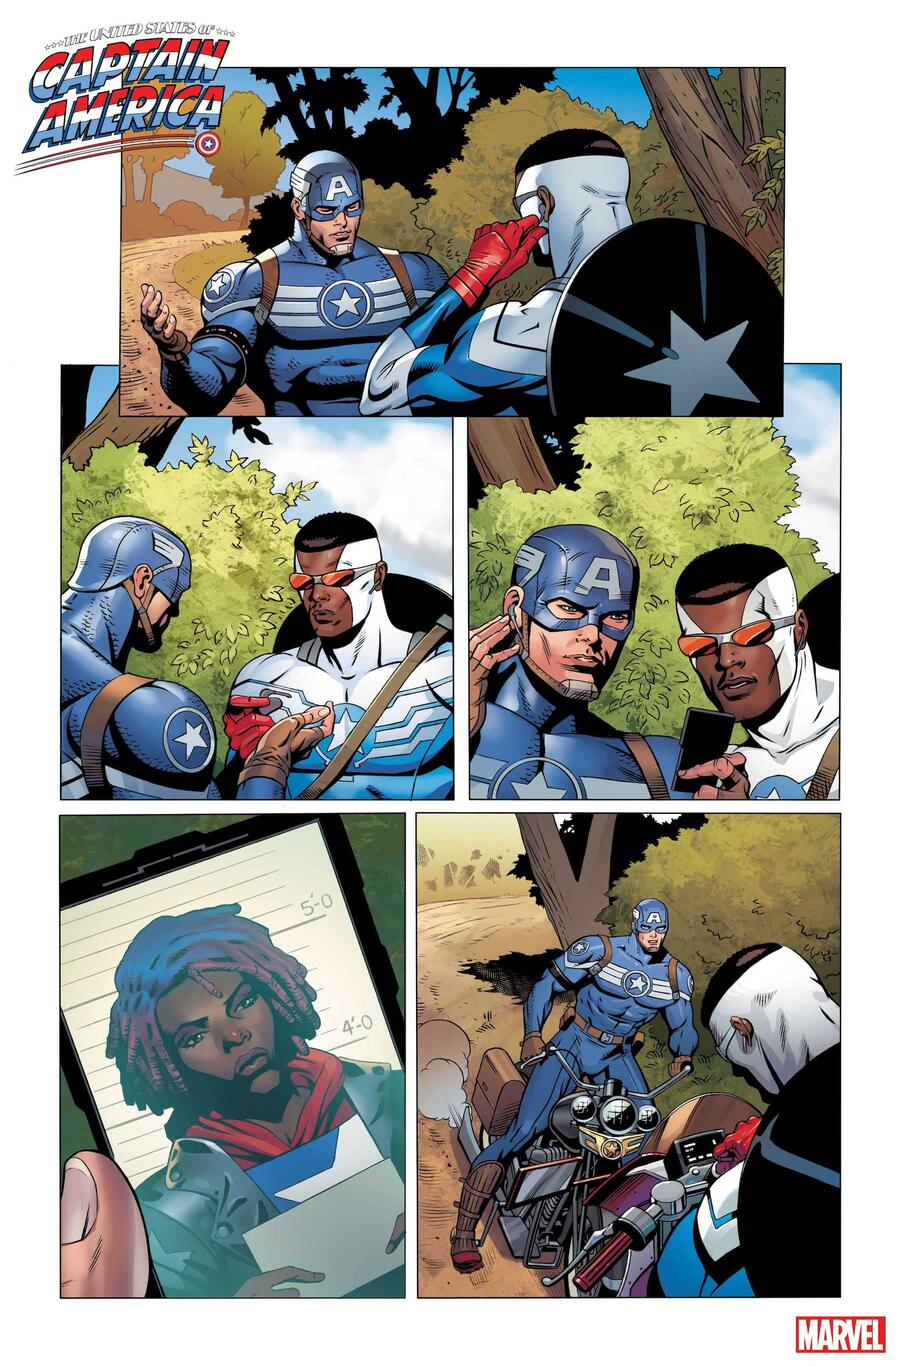 THE UNITED STATES OF CAPTAIN AMERICA #2 preview art by Dale Eaglesham with colors by Matt Milla